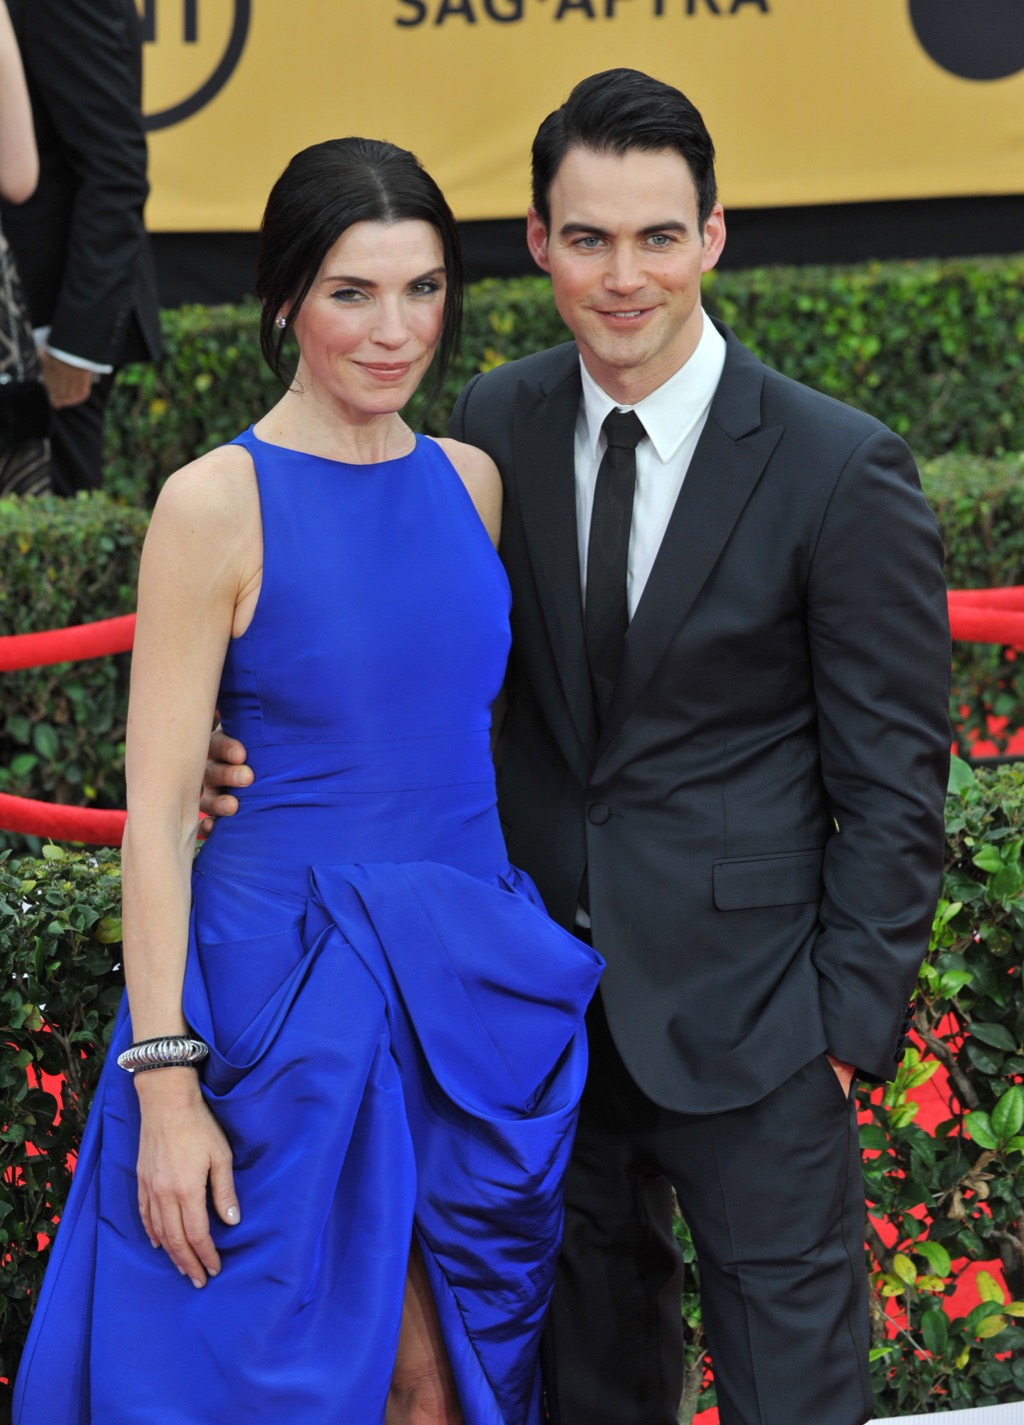 Julianna margulies happily married reverse age gap